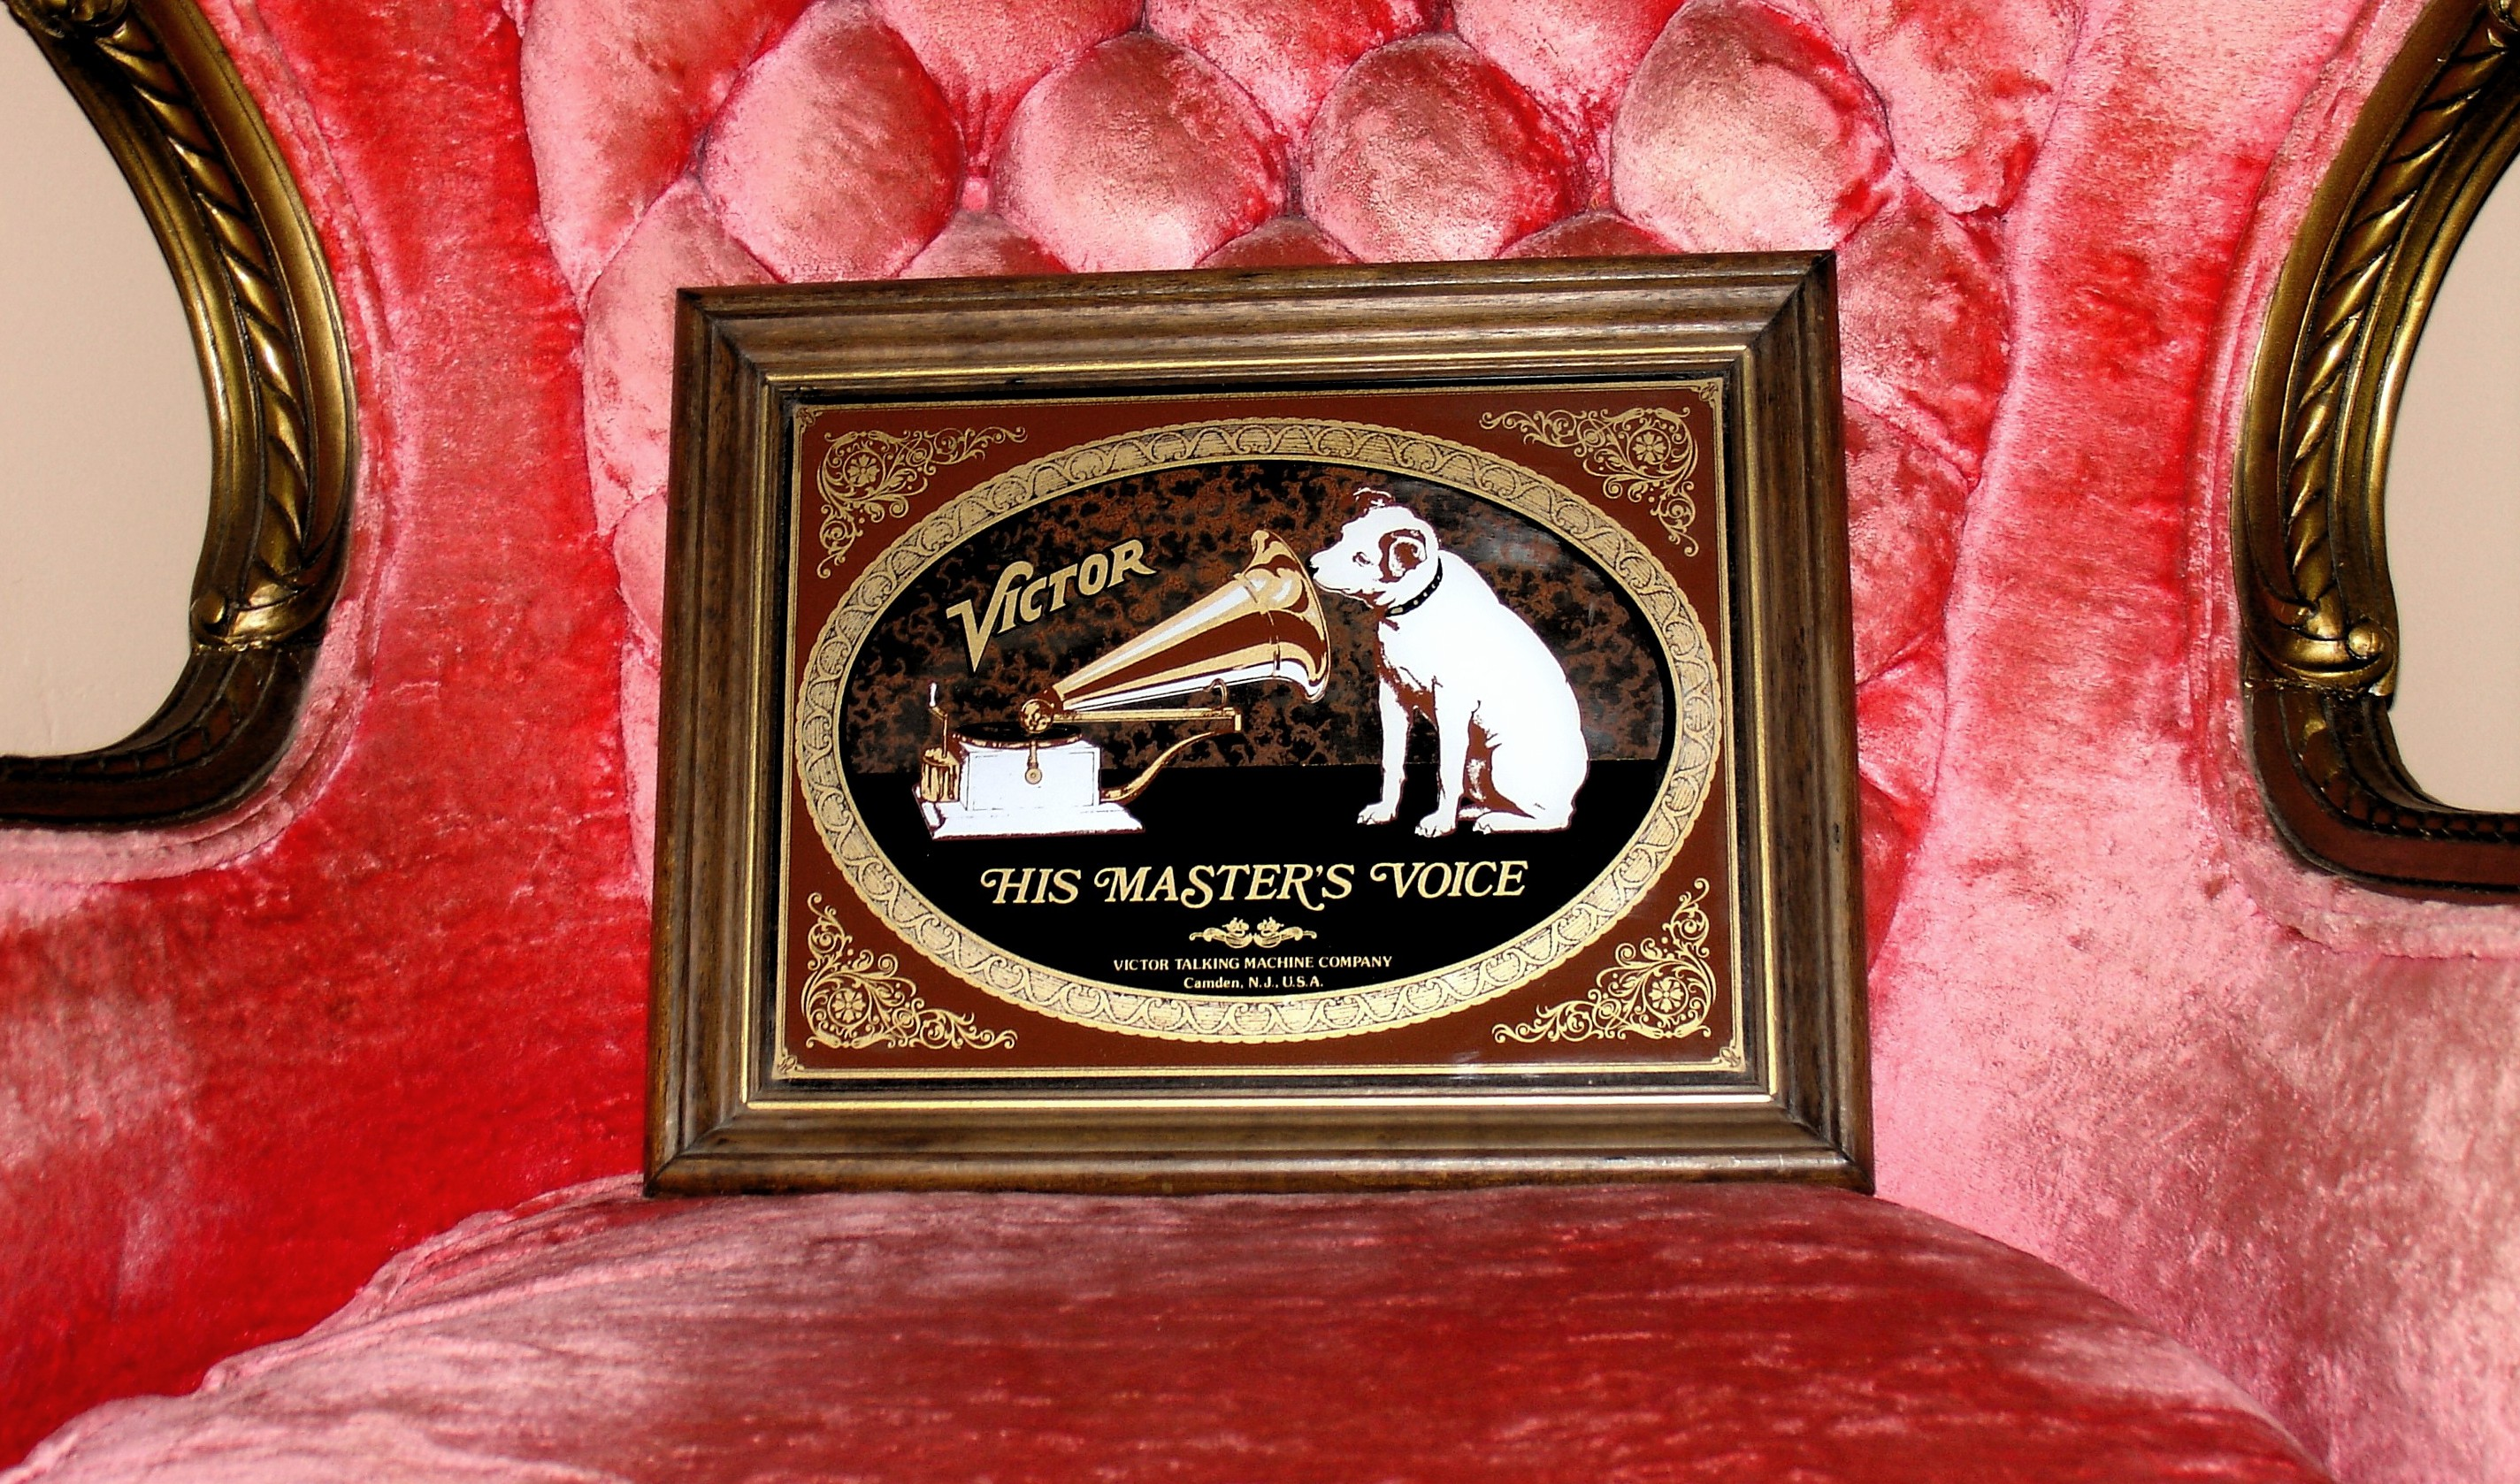 01 Victor Talking Machine His Master's Voice Antique Art Mirror on Red Velvet Chair